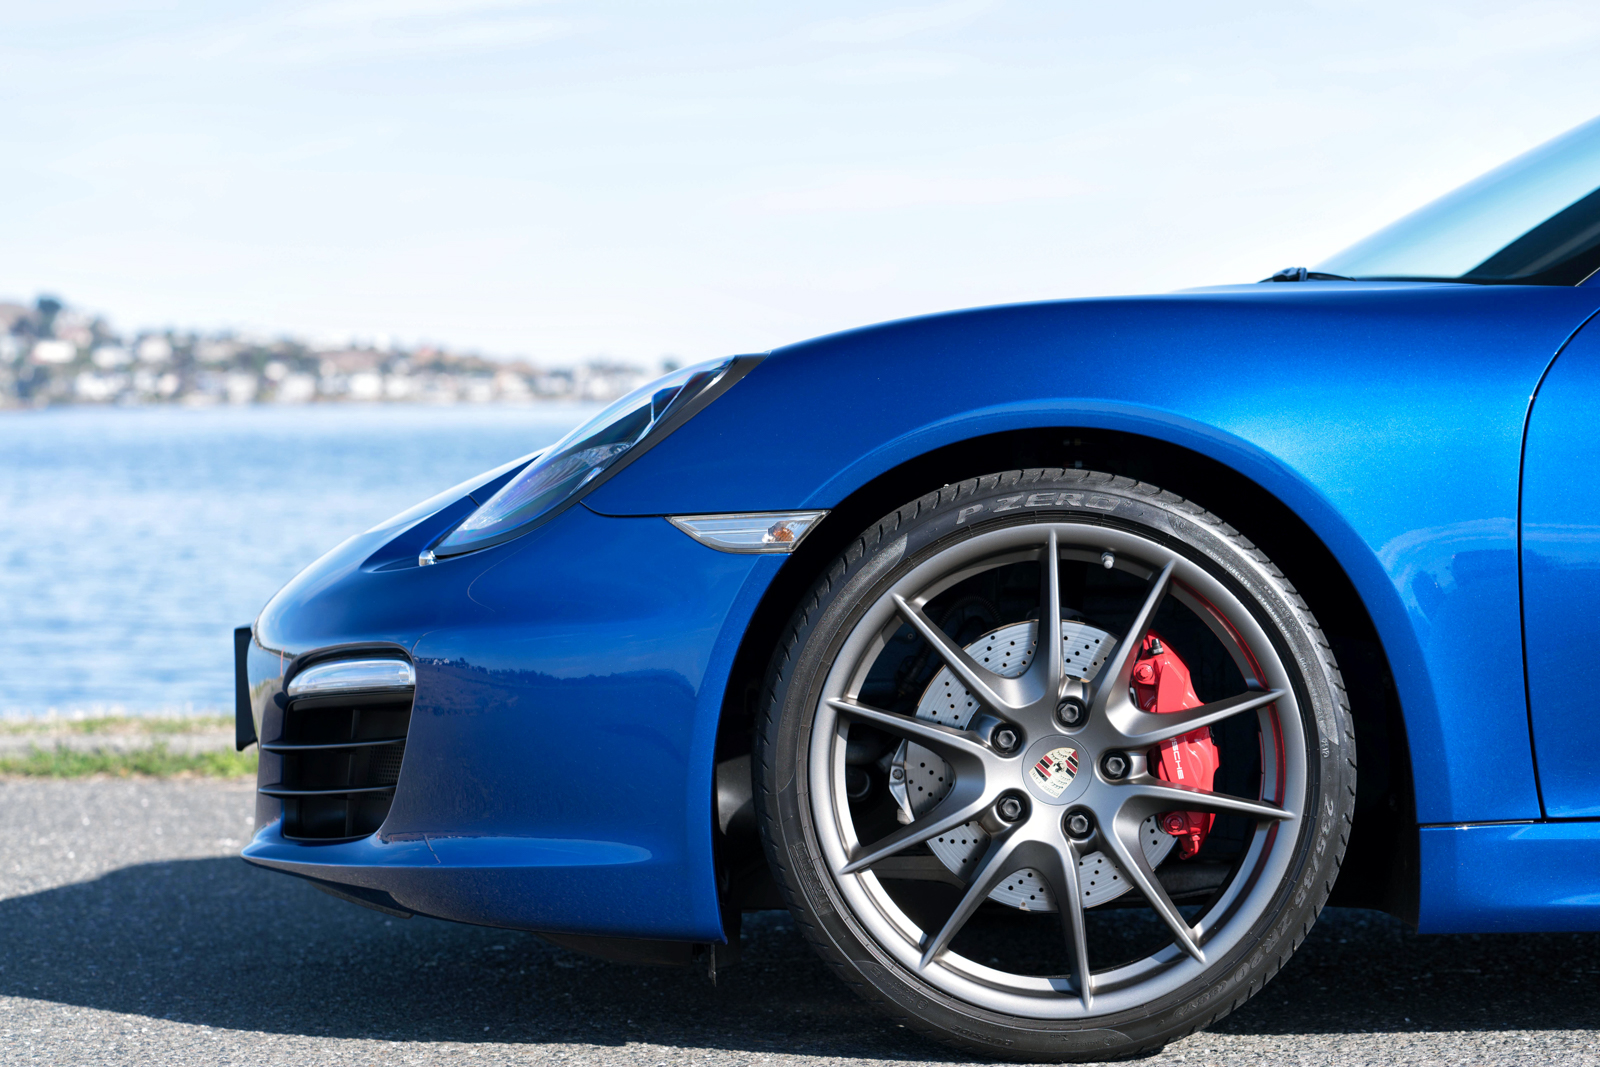 2013 Porsche Boxster S PDK - 4 year Warranty Included for sale